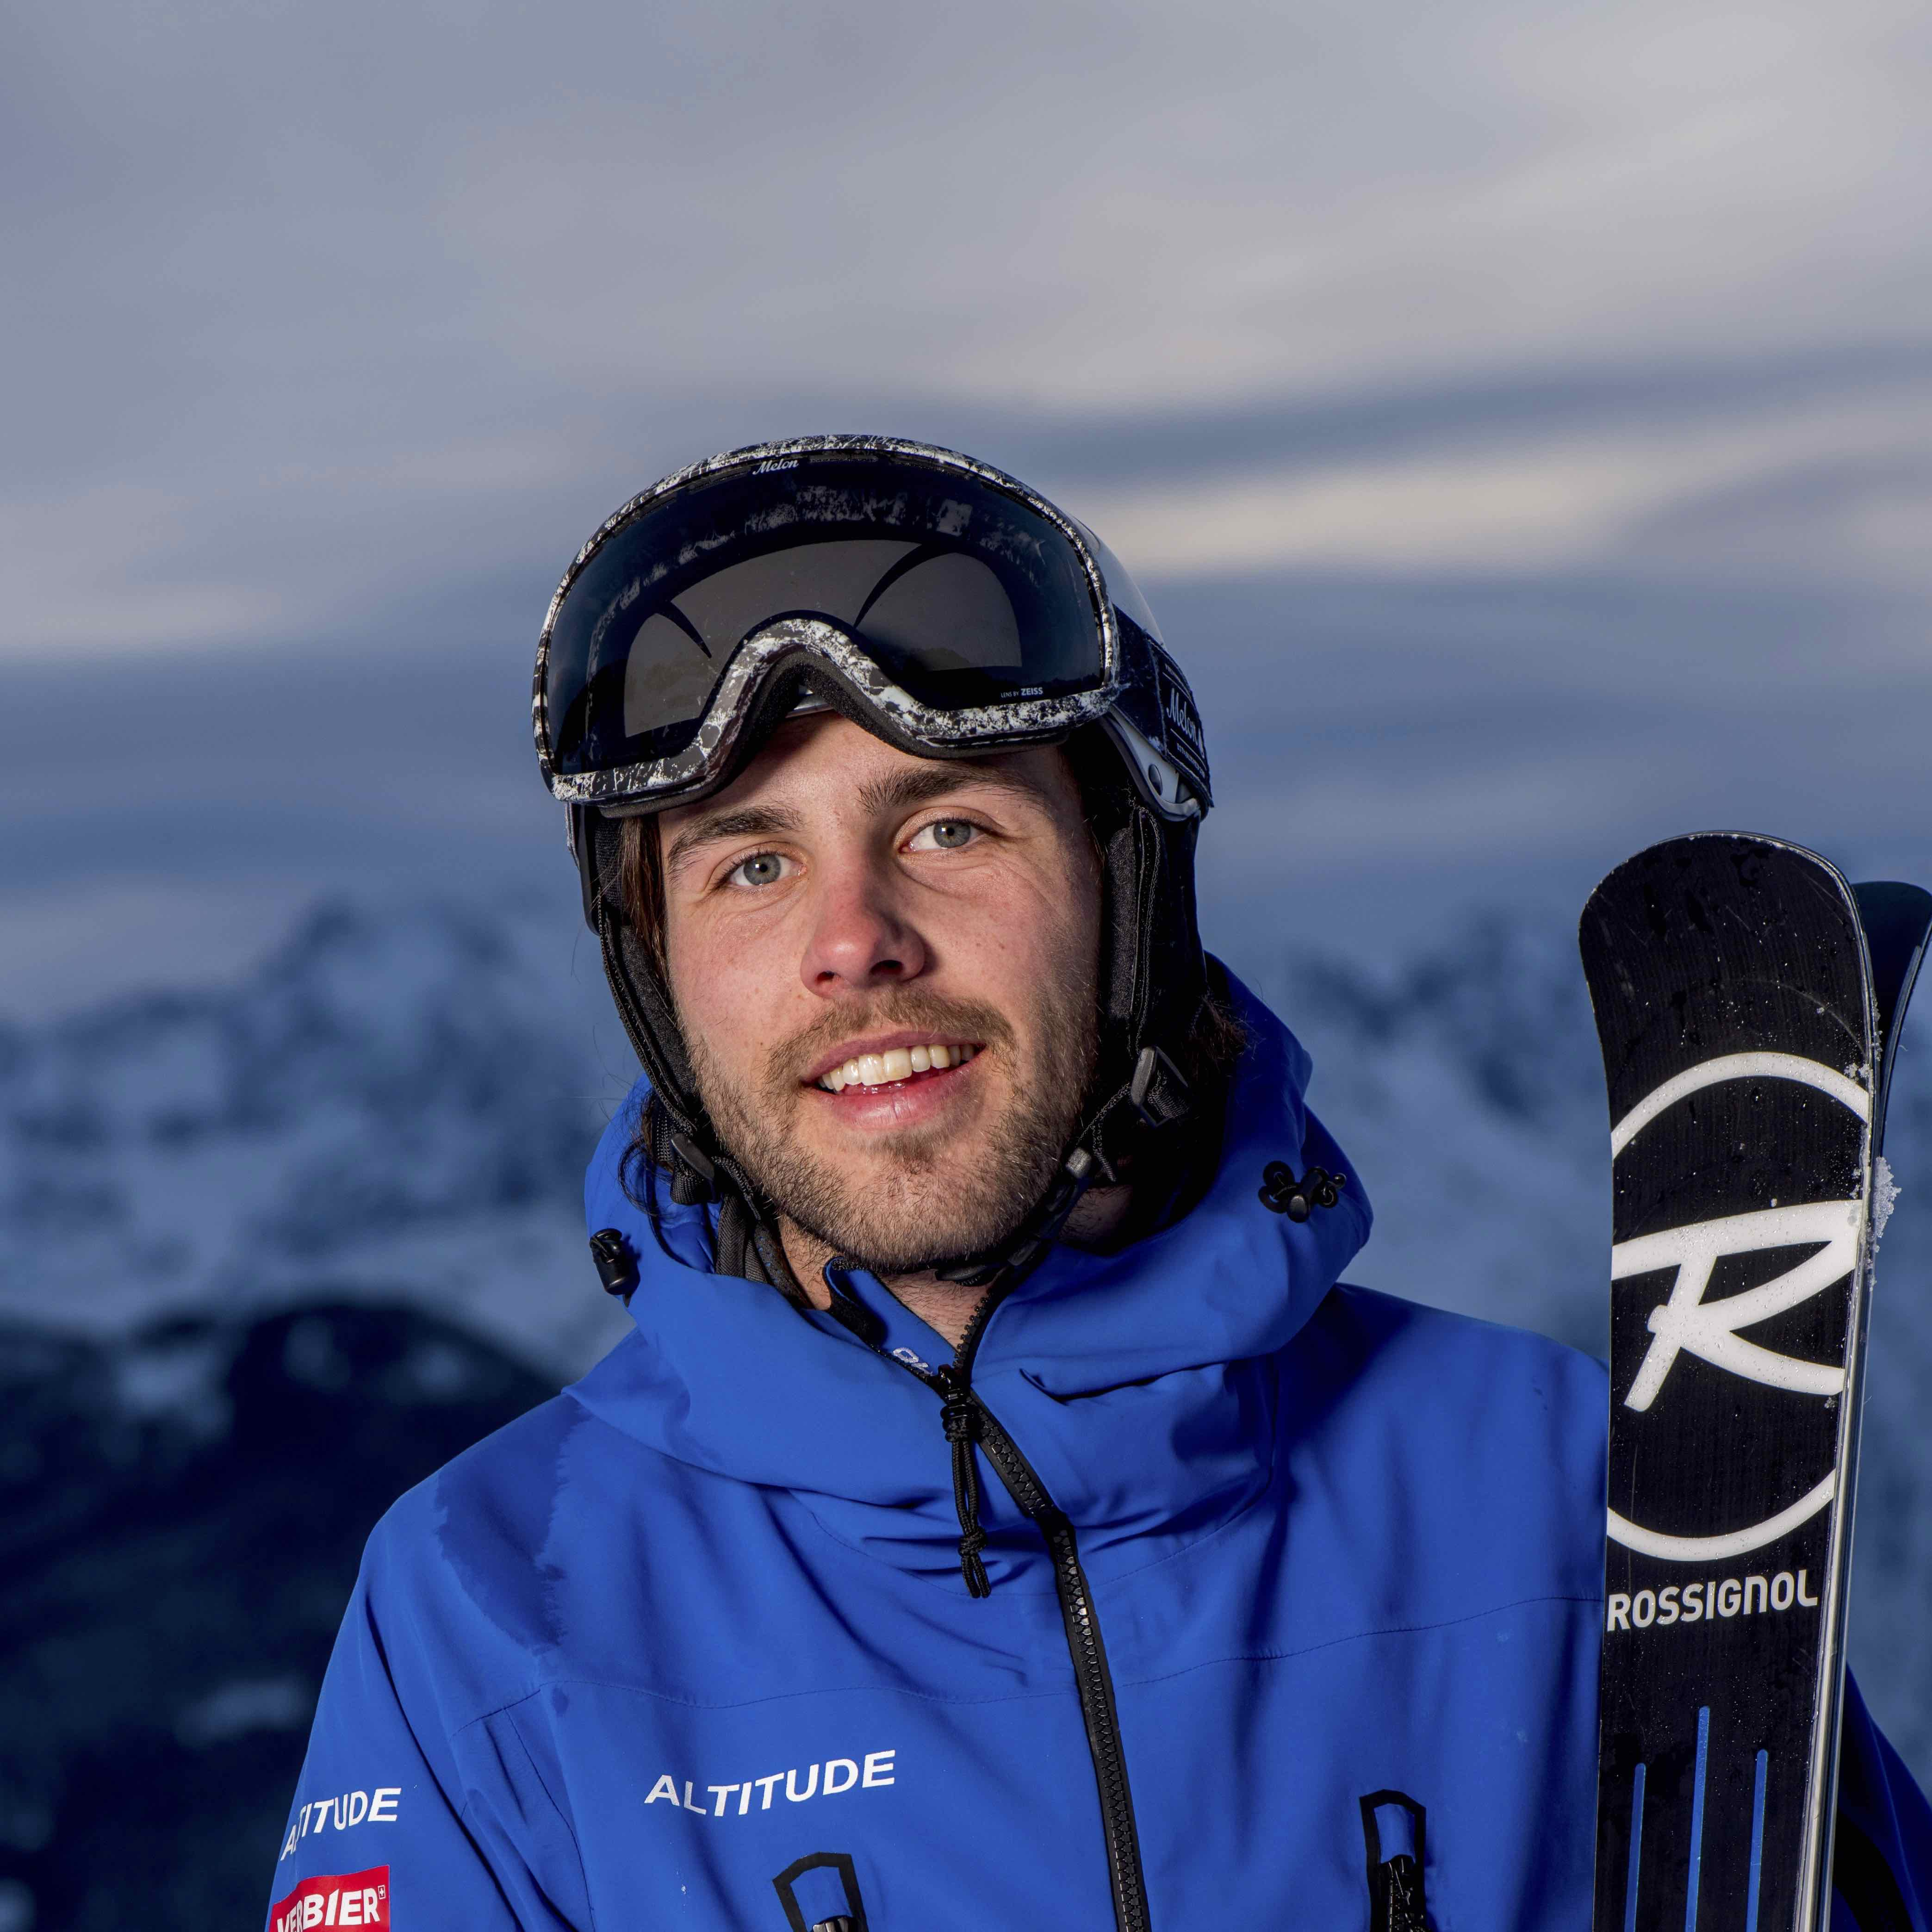 What is the best equipment to choose for your ski instructor course?